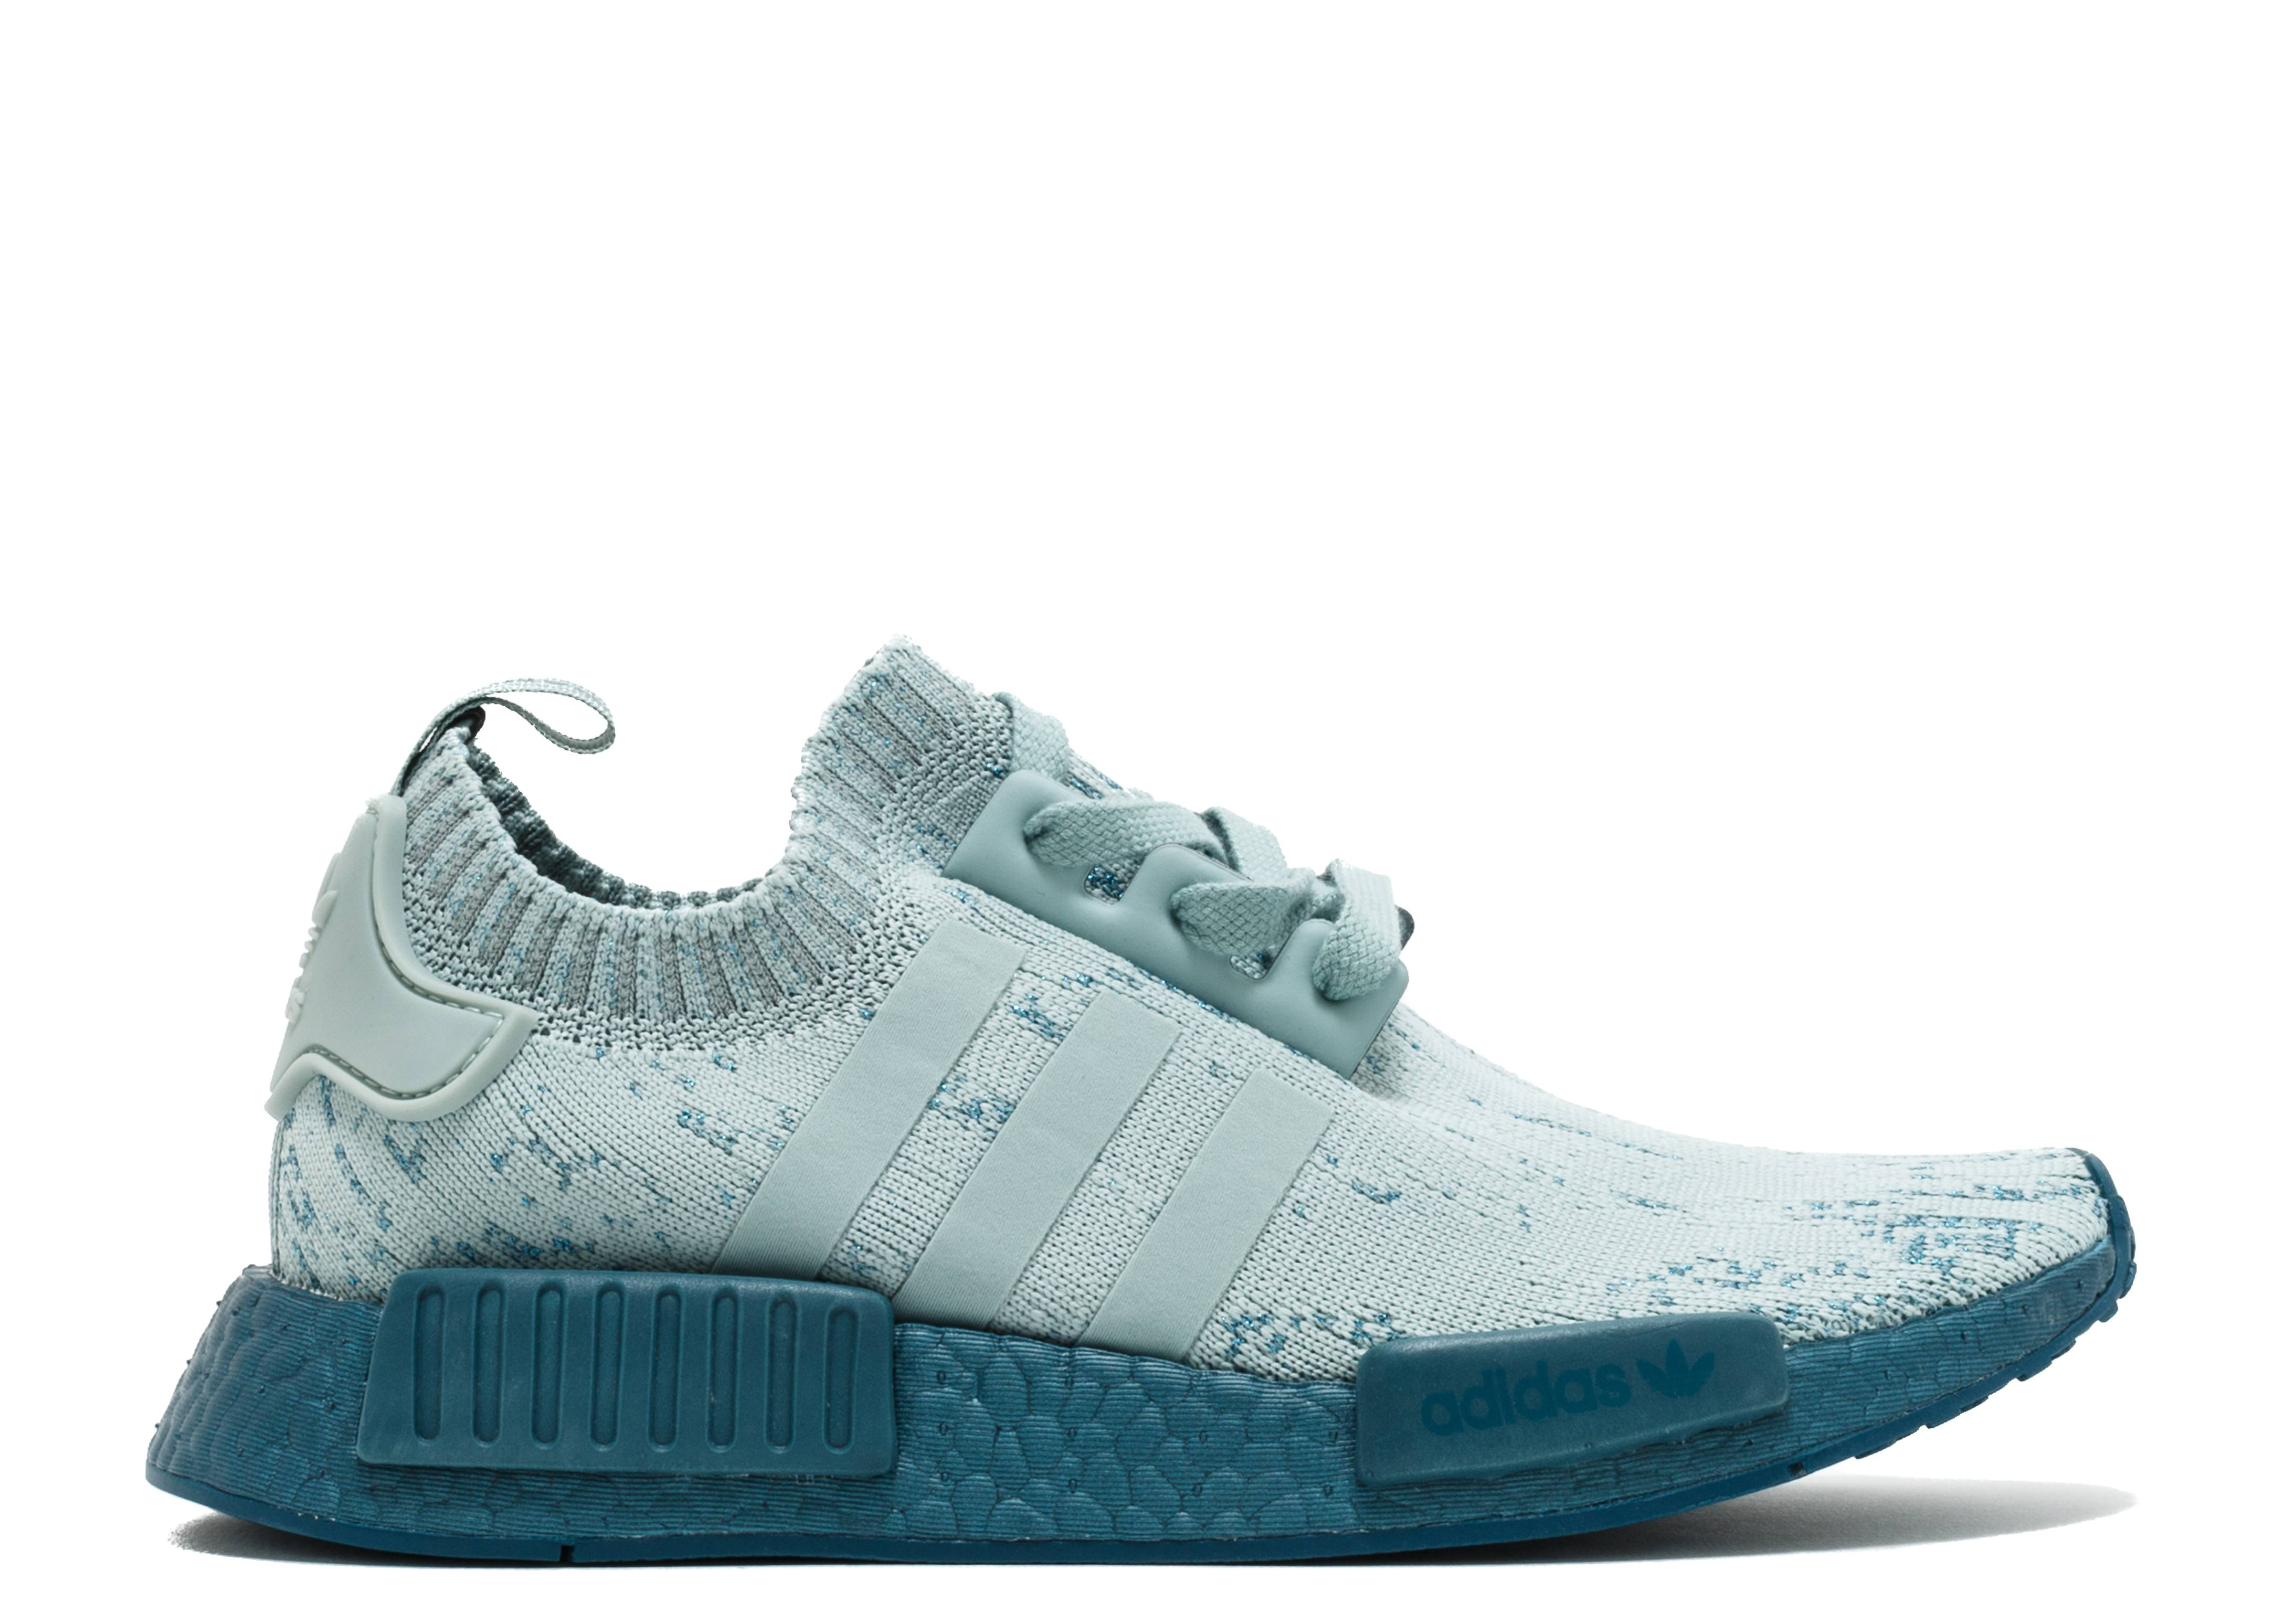 cd8256701 Nmd R1 Vs R2 Vs Xr1 3 1 X 10 Adidas Green I 5923 Trainers And Jeans ...